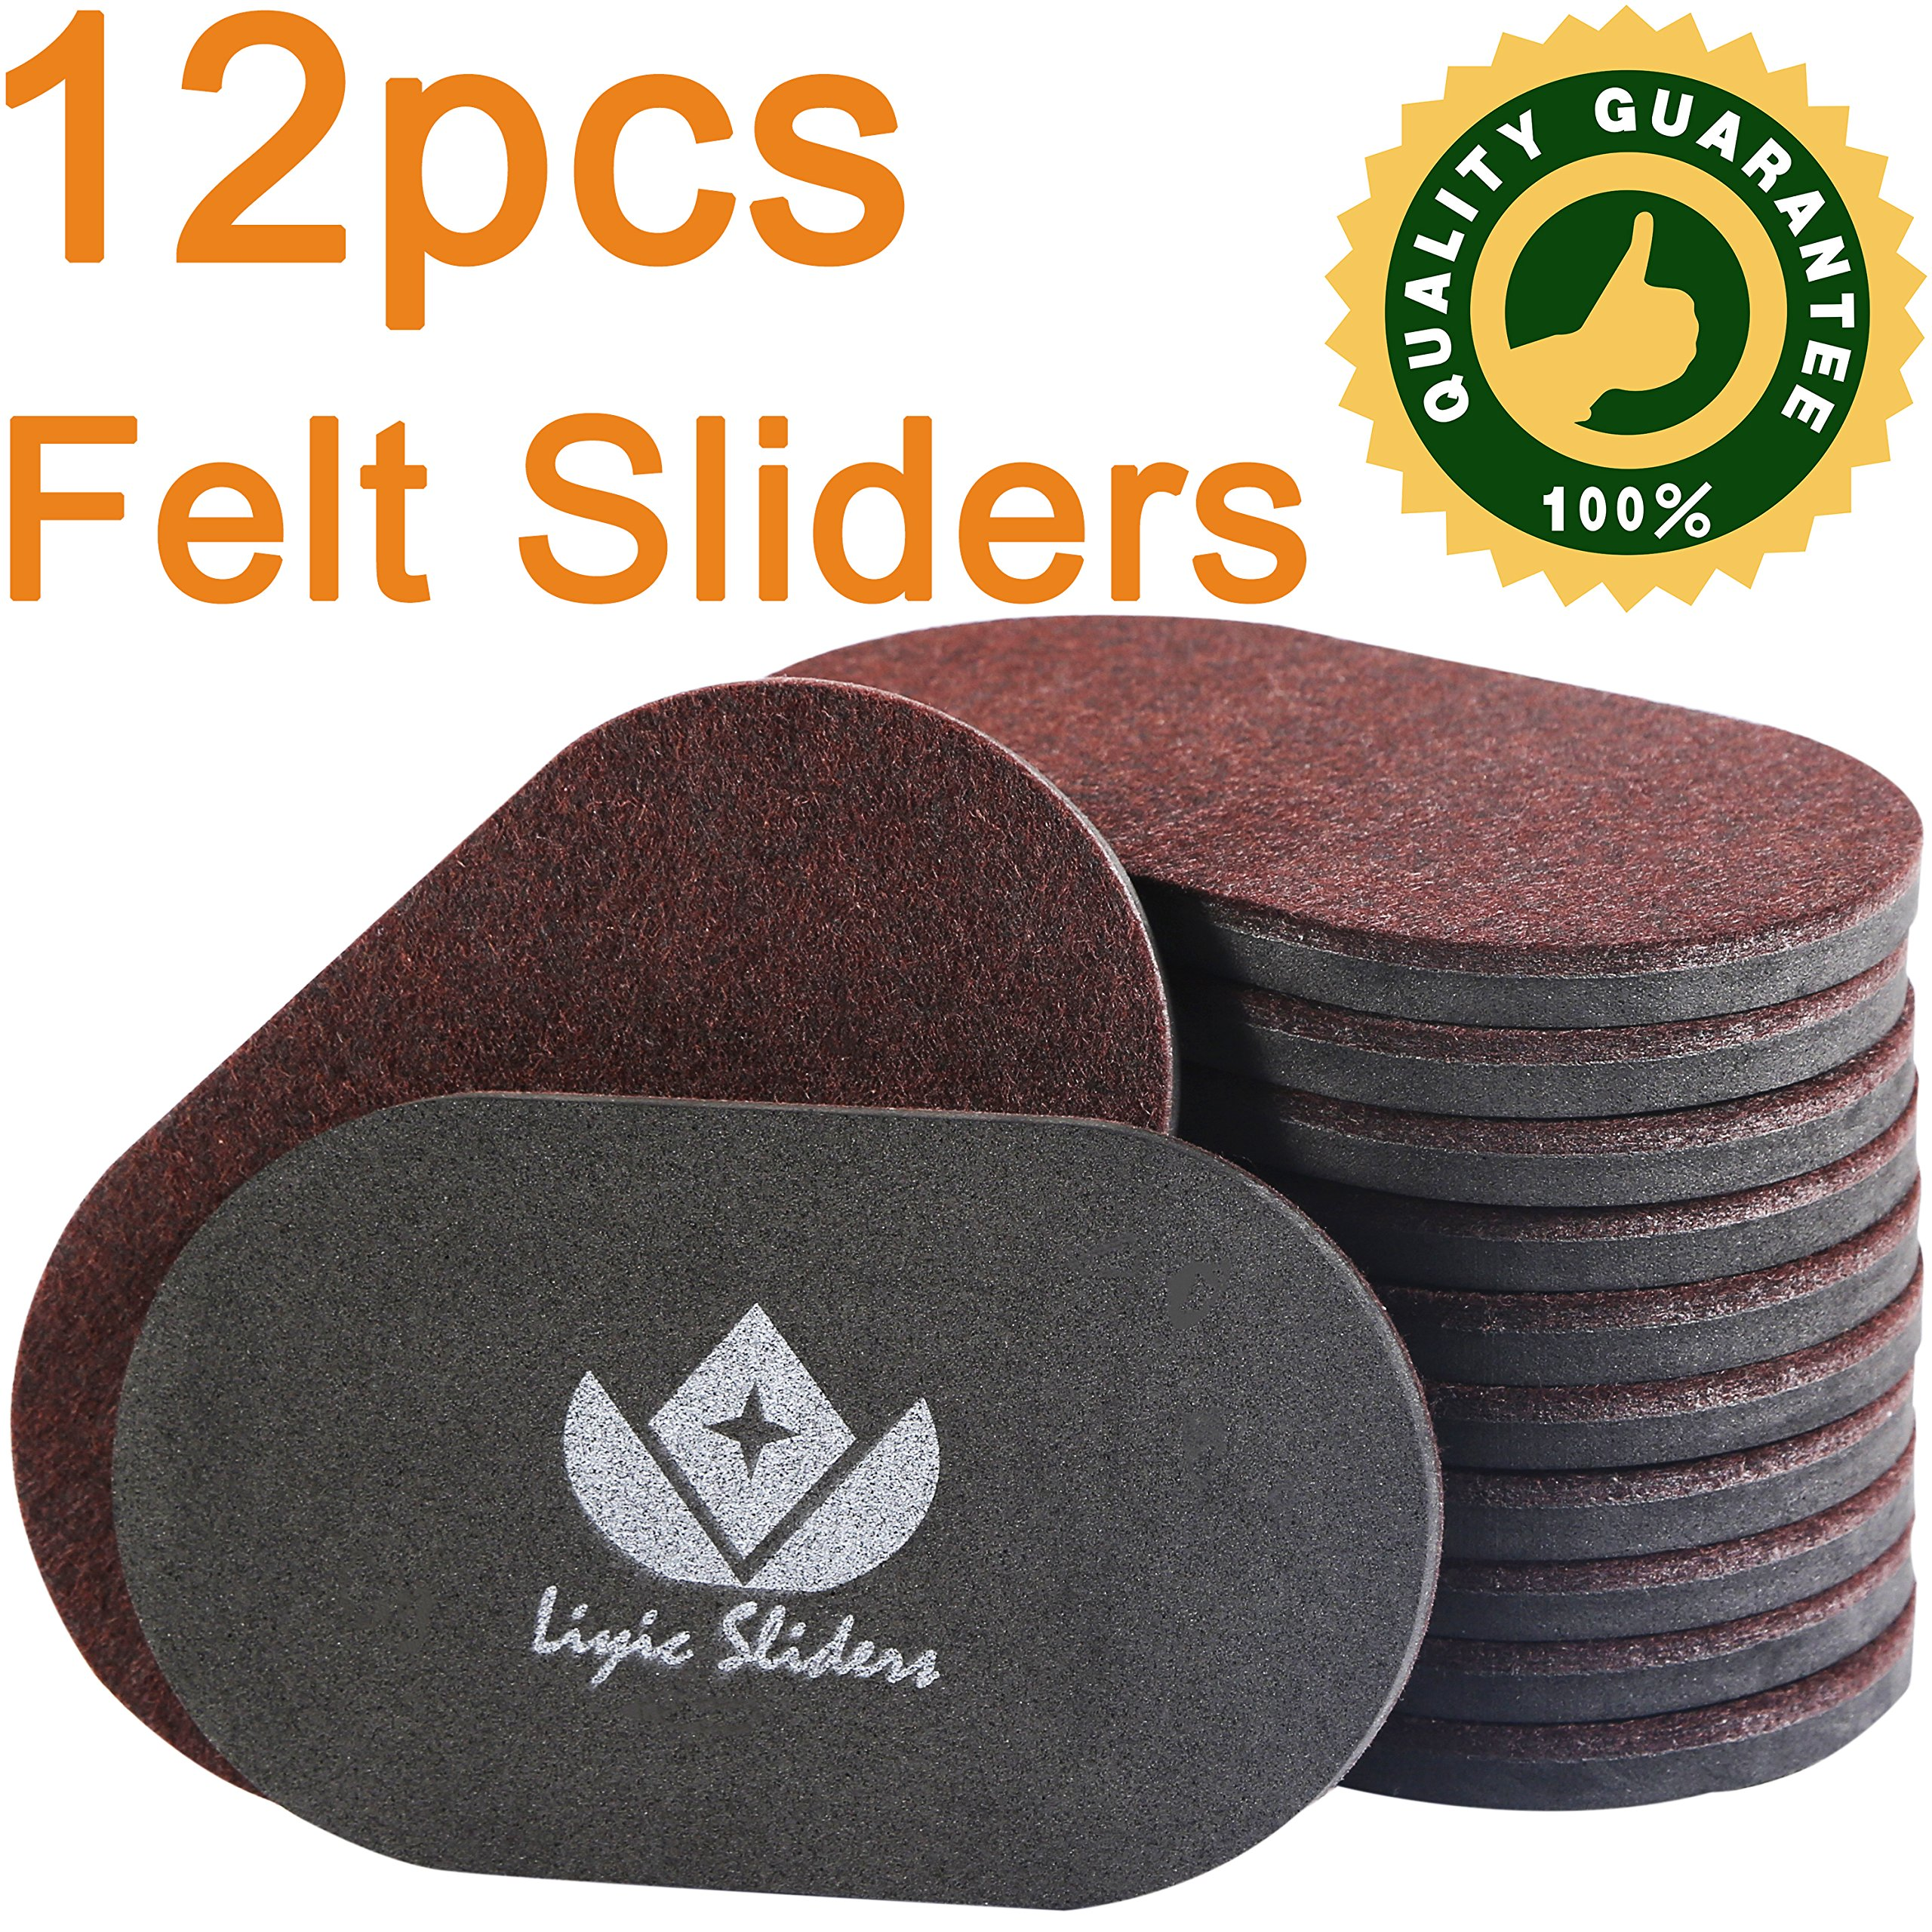 Liyic 12 Pack 6in. X 3.5in.Reusable Brown Oval Felt Furniture Sliders for Hard Surfaces.Premium Heavy Furniture Movers for Wooden Floor,Furniture Felt Slider Heavy Duty Felt Sliders Hard Floor Slider by Liyic (Image #4)